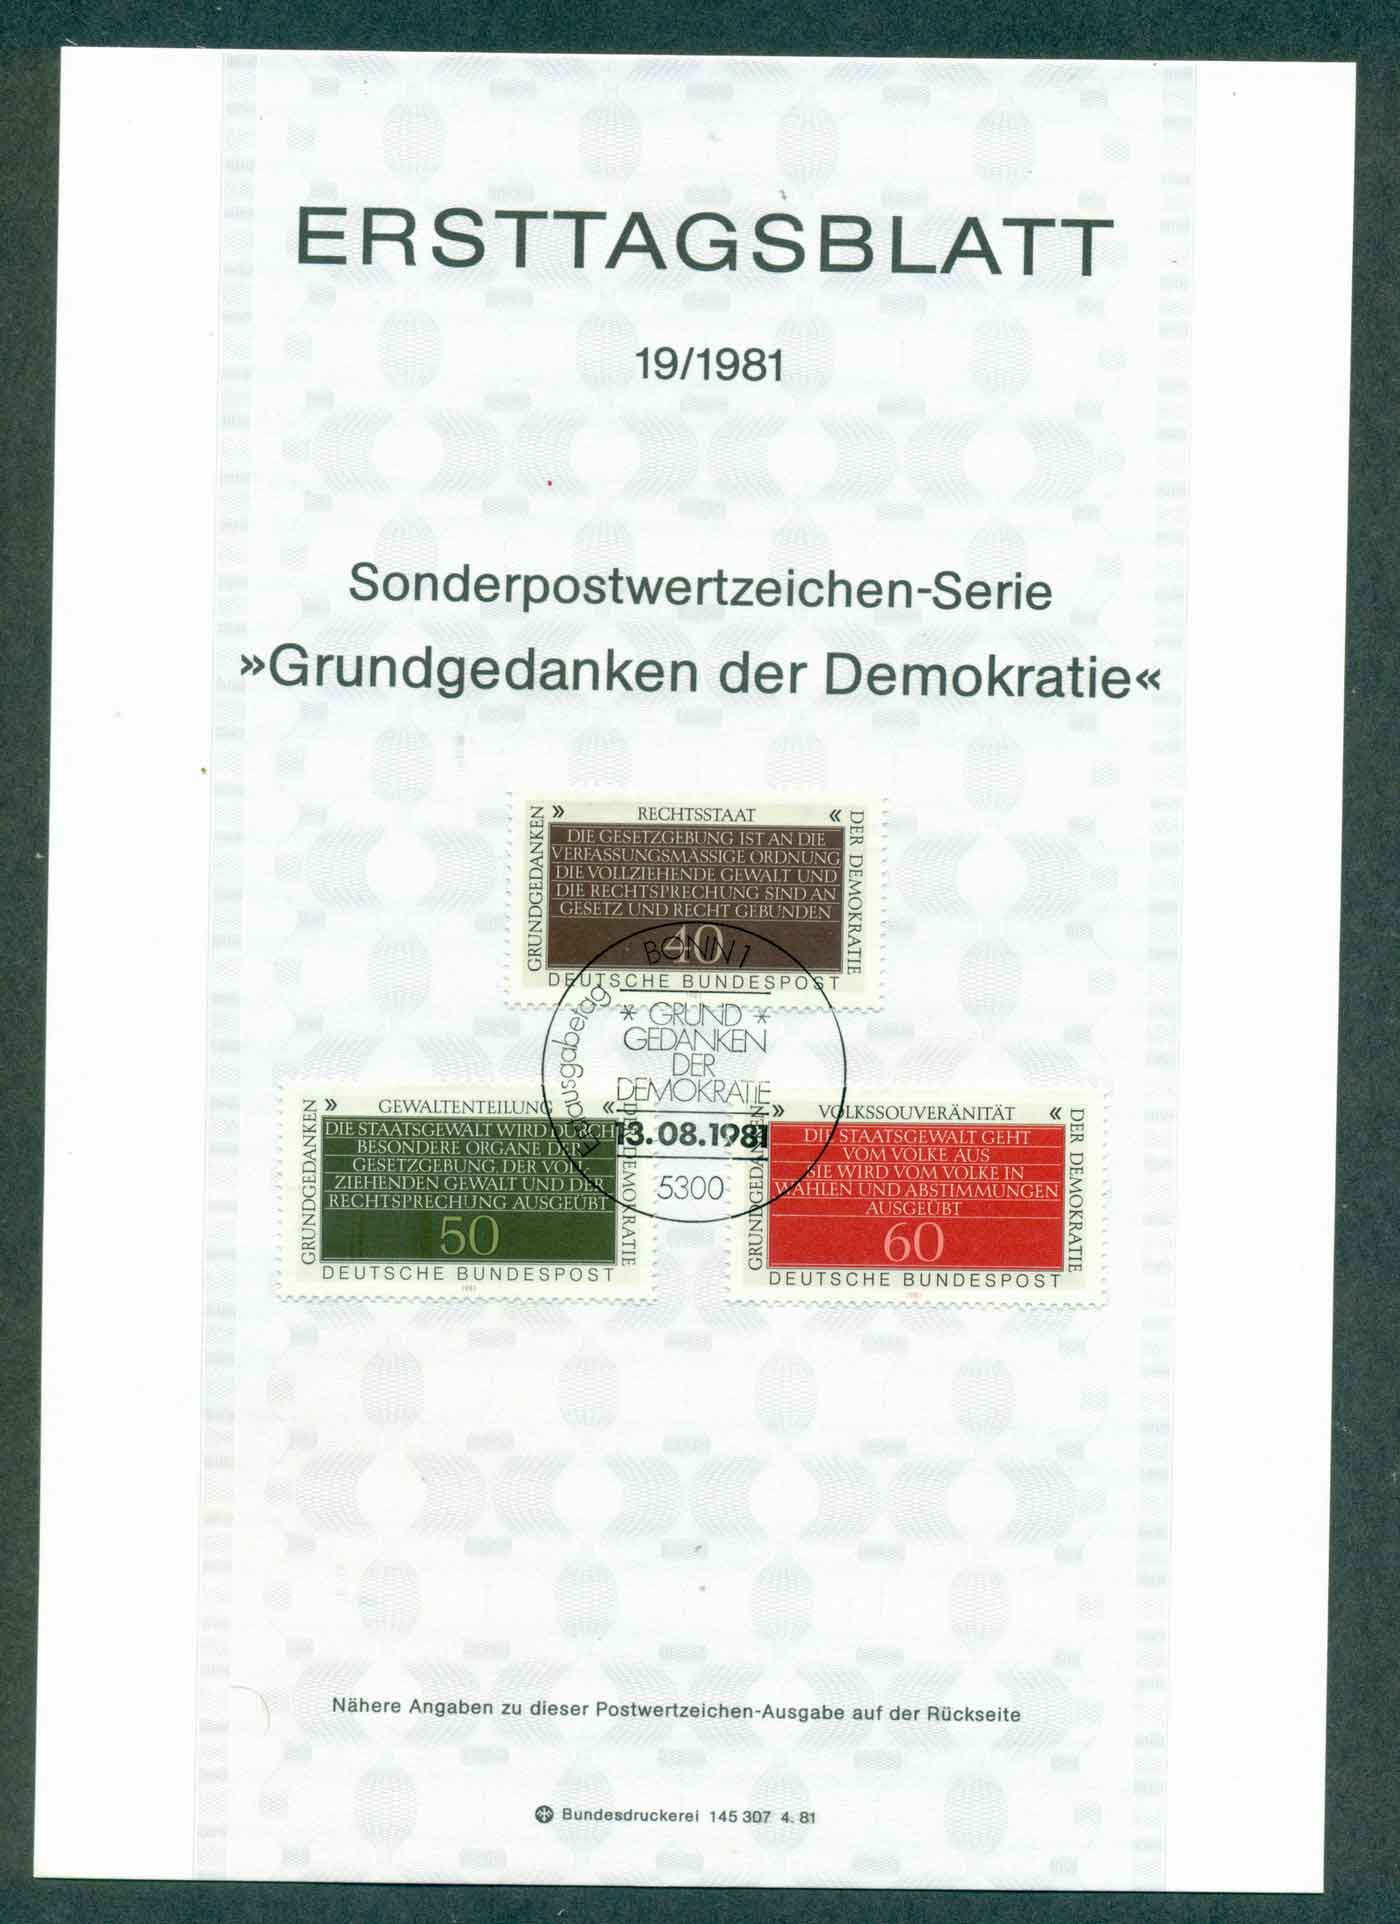 Germany 1981 Statement of Freedom & Democracy Ersttagsblatt FDI lot32217